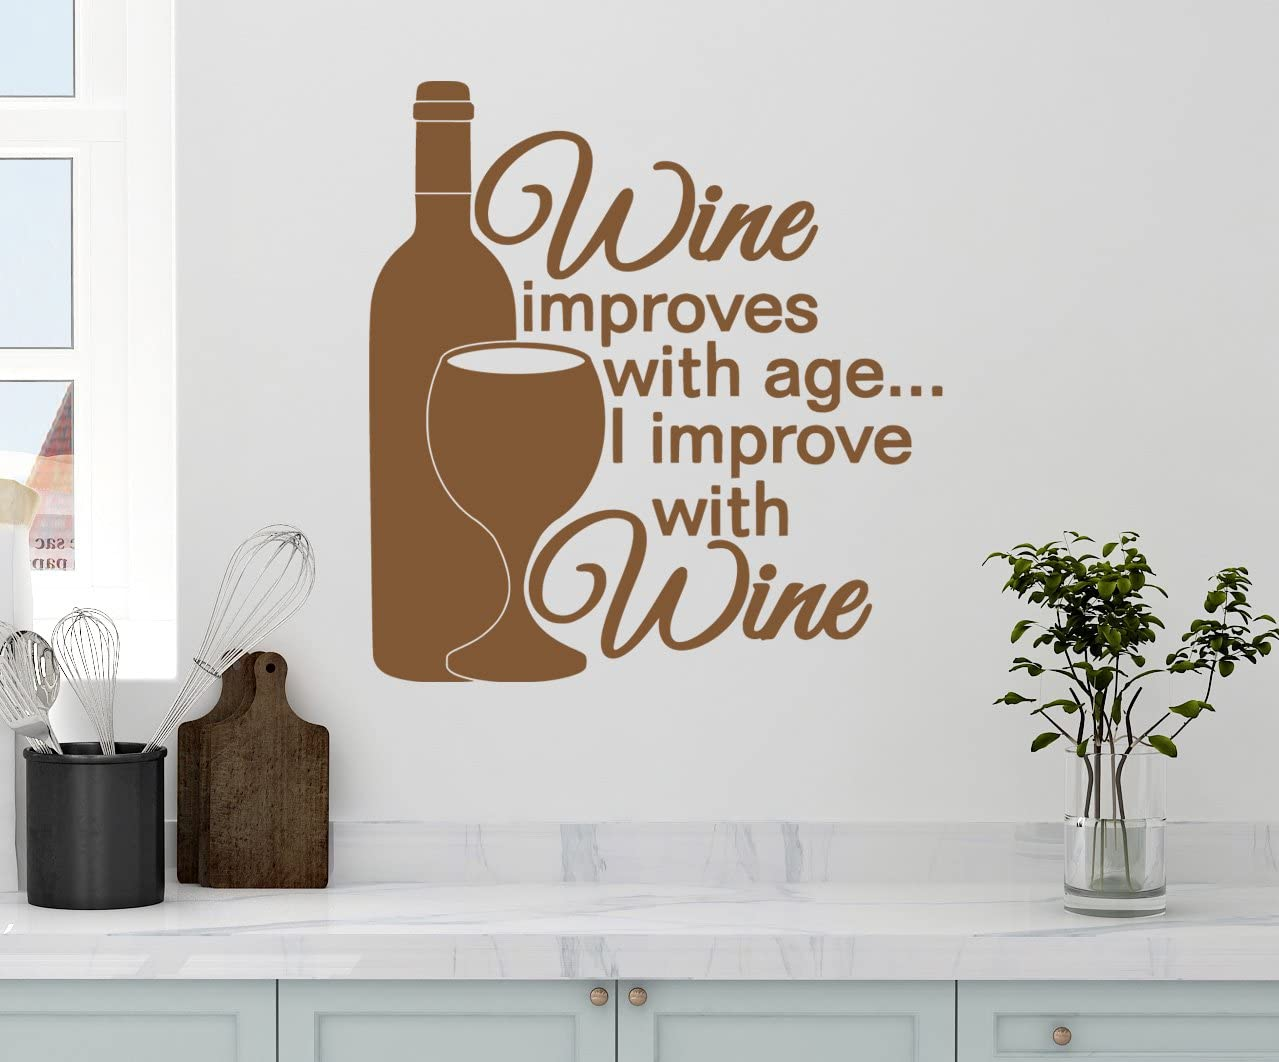 24 X24 Wine Improves With Age I Improve With Wine Drink Bottle Silhouette Kitchen Wall Decal Sticker Art Mural Home Decor Home Kitchen